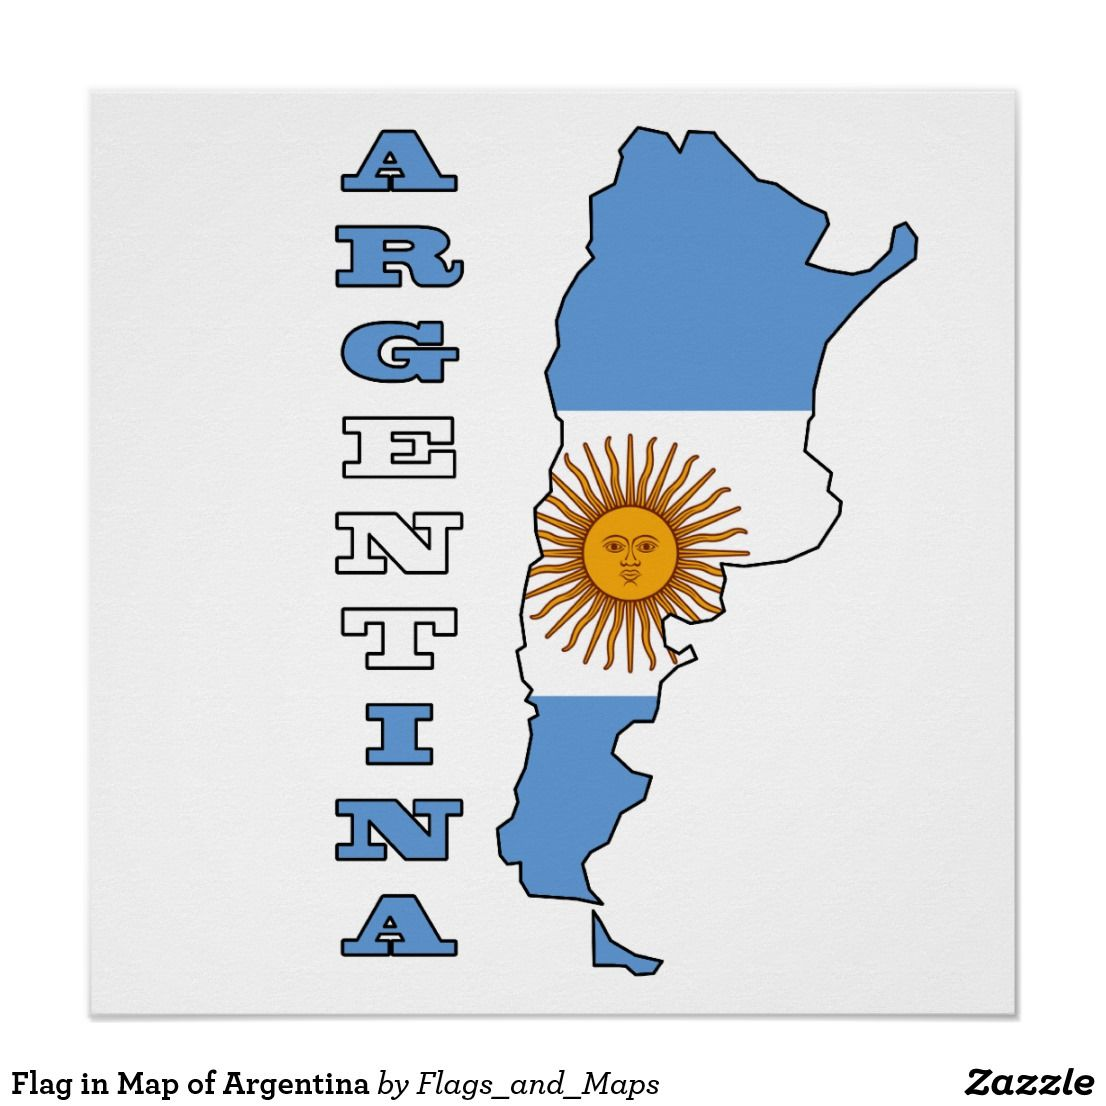 Flag in Map of Argentina Poster | Zazzle.com | door ... Map Of Argentina With Flag on map of albania with flag, map of namibia with flag, map of jordan with flag, map of germany with flag, map of liberia with flag, map of north america with flag, map of the united states with flag, map of india with flag, map of madagascar with flag, map of china with flag, map of japan with flag, map of greece with flag, map of togo with flag, map of syria with flag, map of lebanon with flag, map of england with flag, map of egypt with flag, map of ireland with flag, map of saudi arabia with flag, map of brazil with flag,